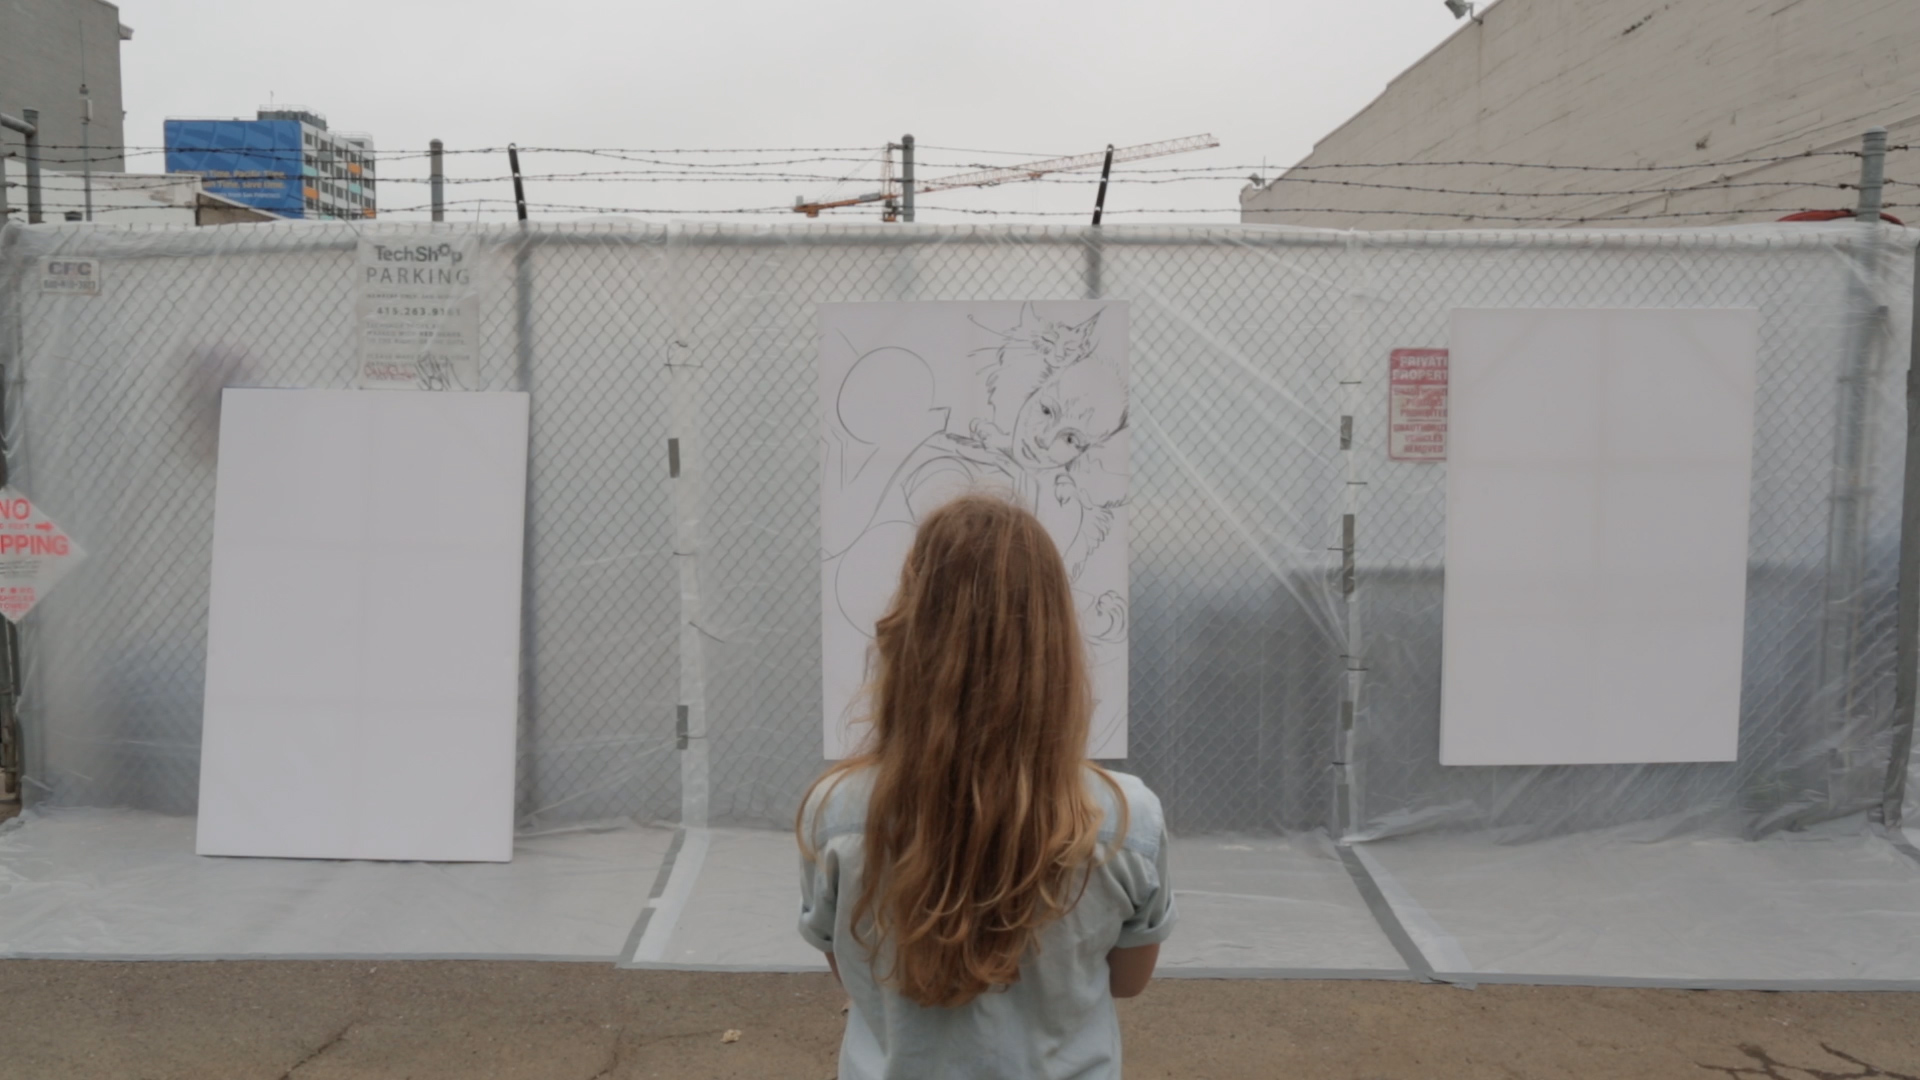 An activist contemplates her next step at the 2012 Urban Prototyping Festival.